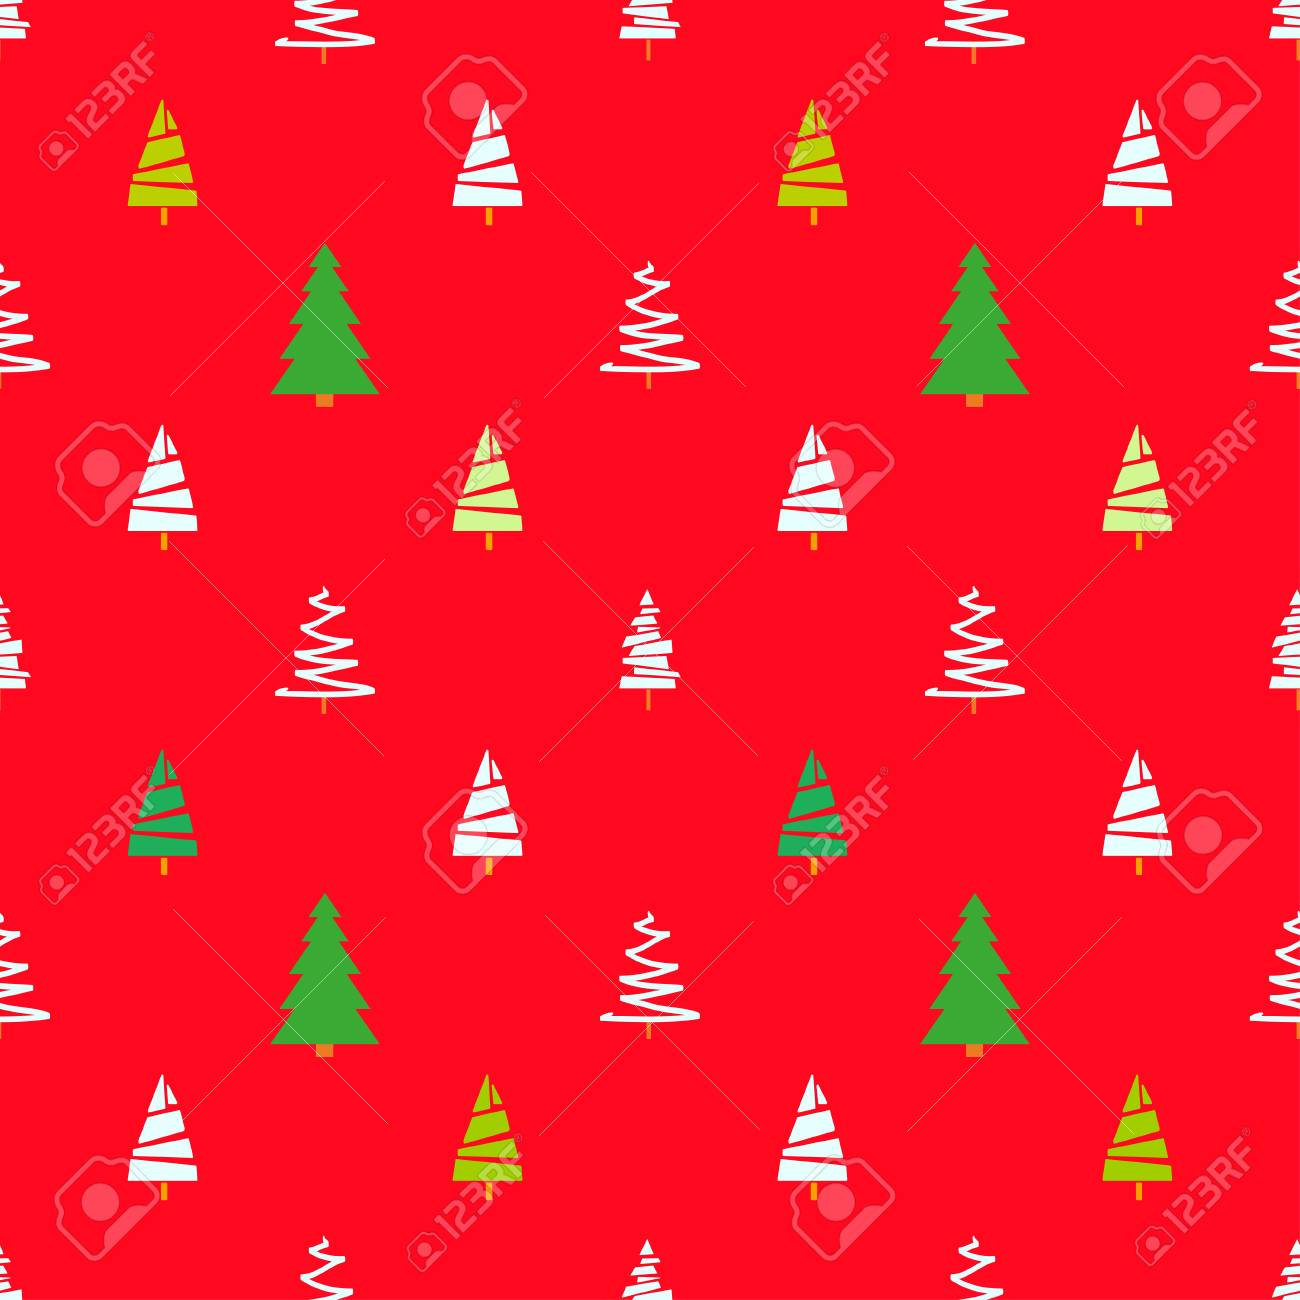 Seamless Pattern With Christmas Trees Abstract Geometric